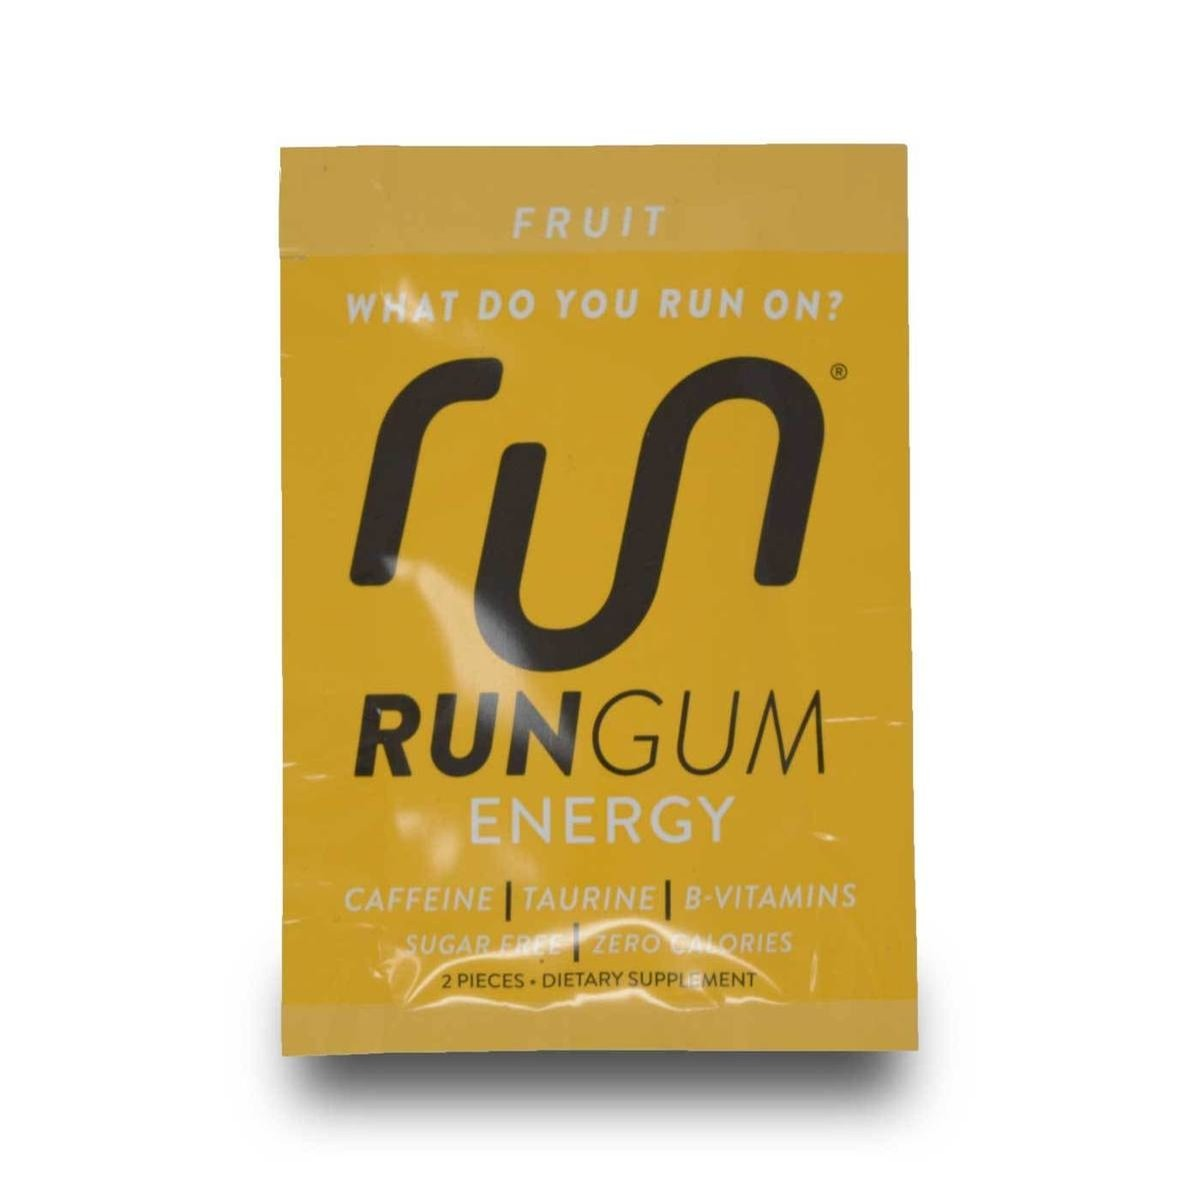 Altitude Running Run Gum-Fruit